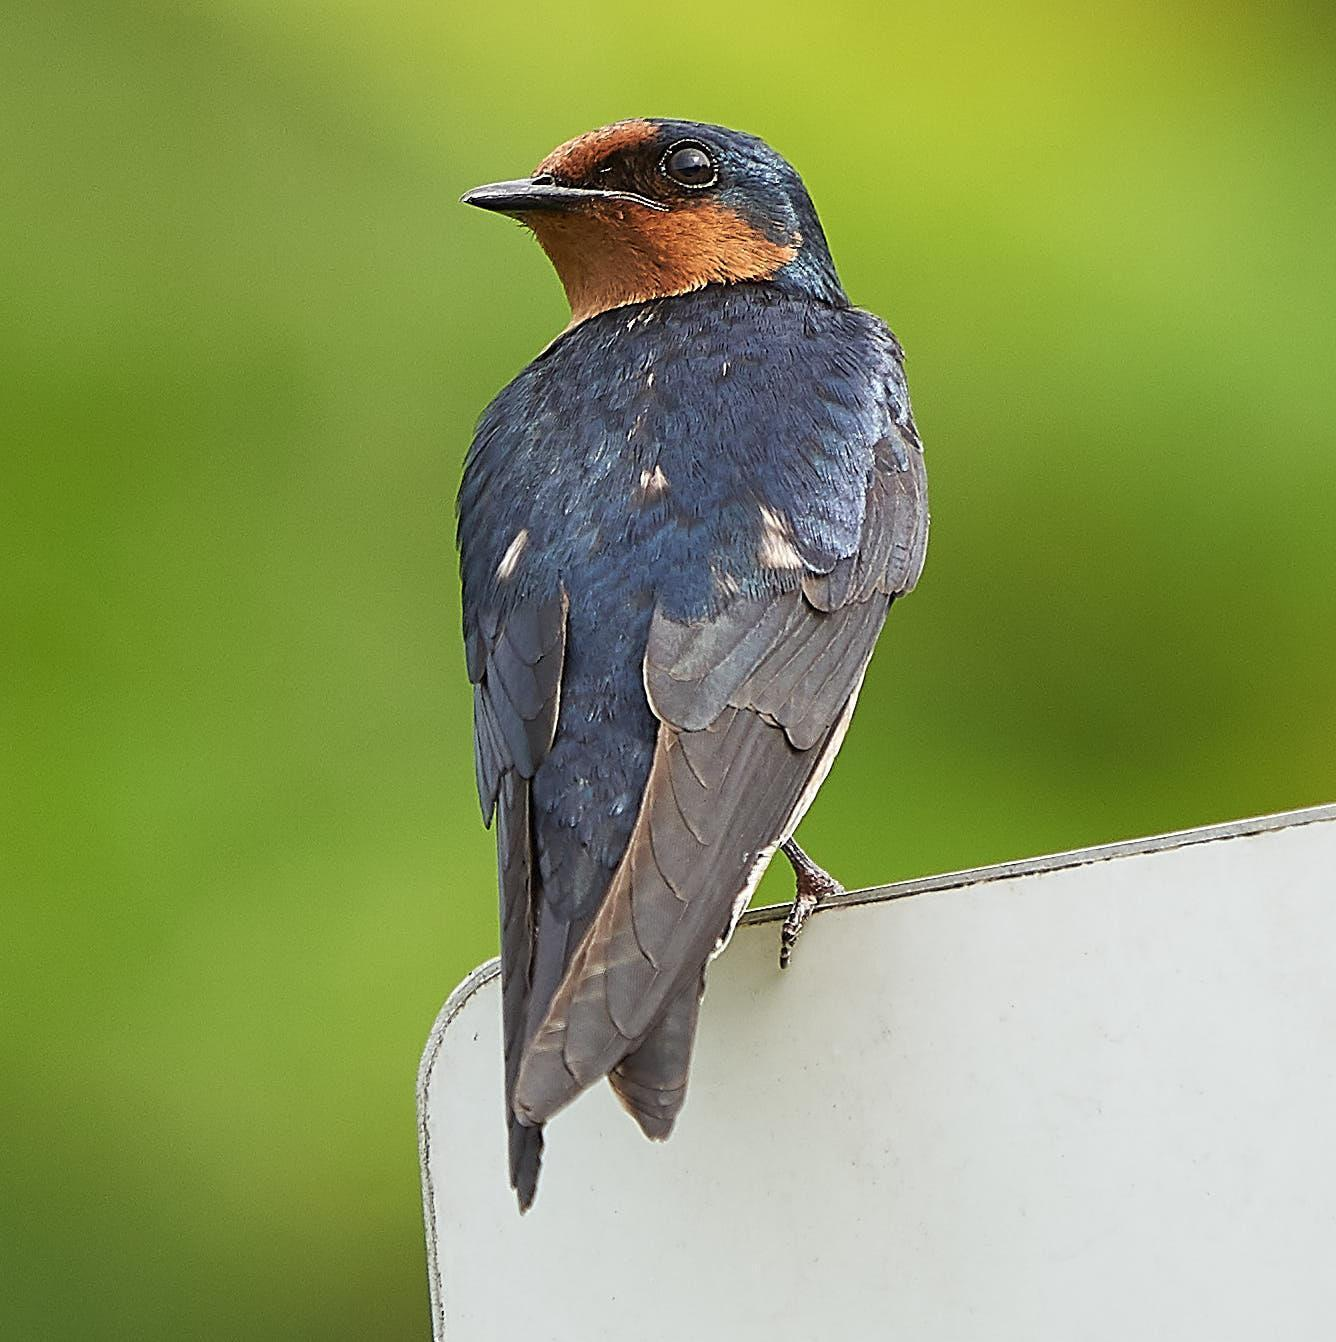 Pacific Swallow Photo by Steven Cheong